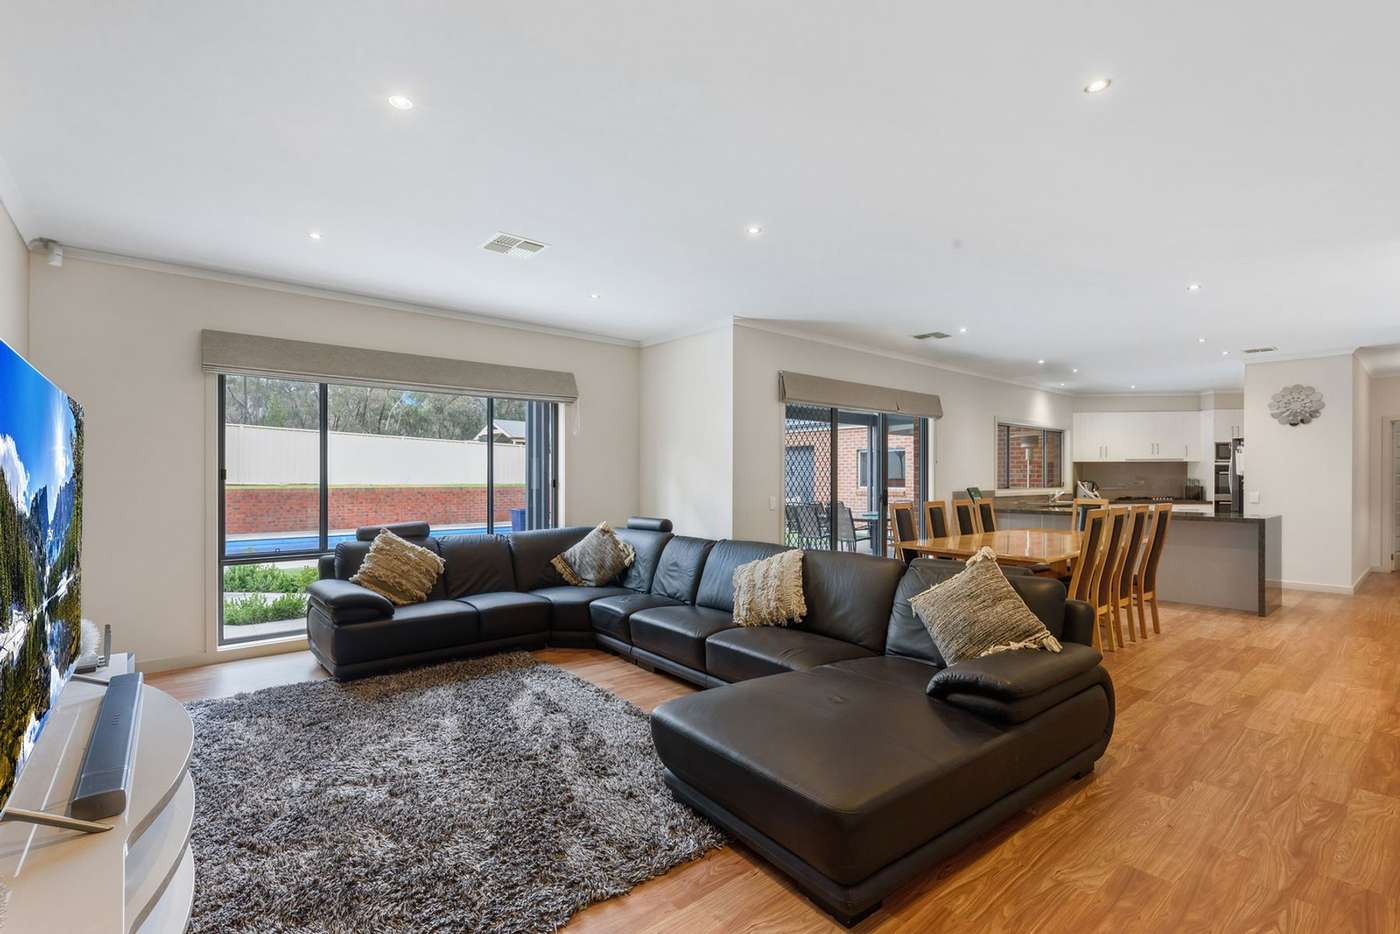 Fifth view of Homely house listing, 5 Ninnes Court, Maiden Gully VIC 3551